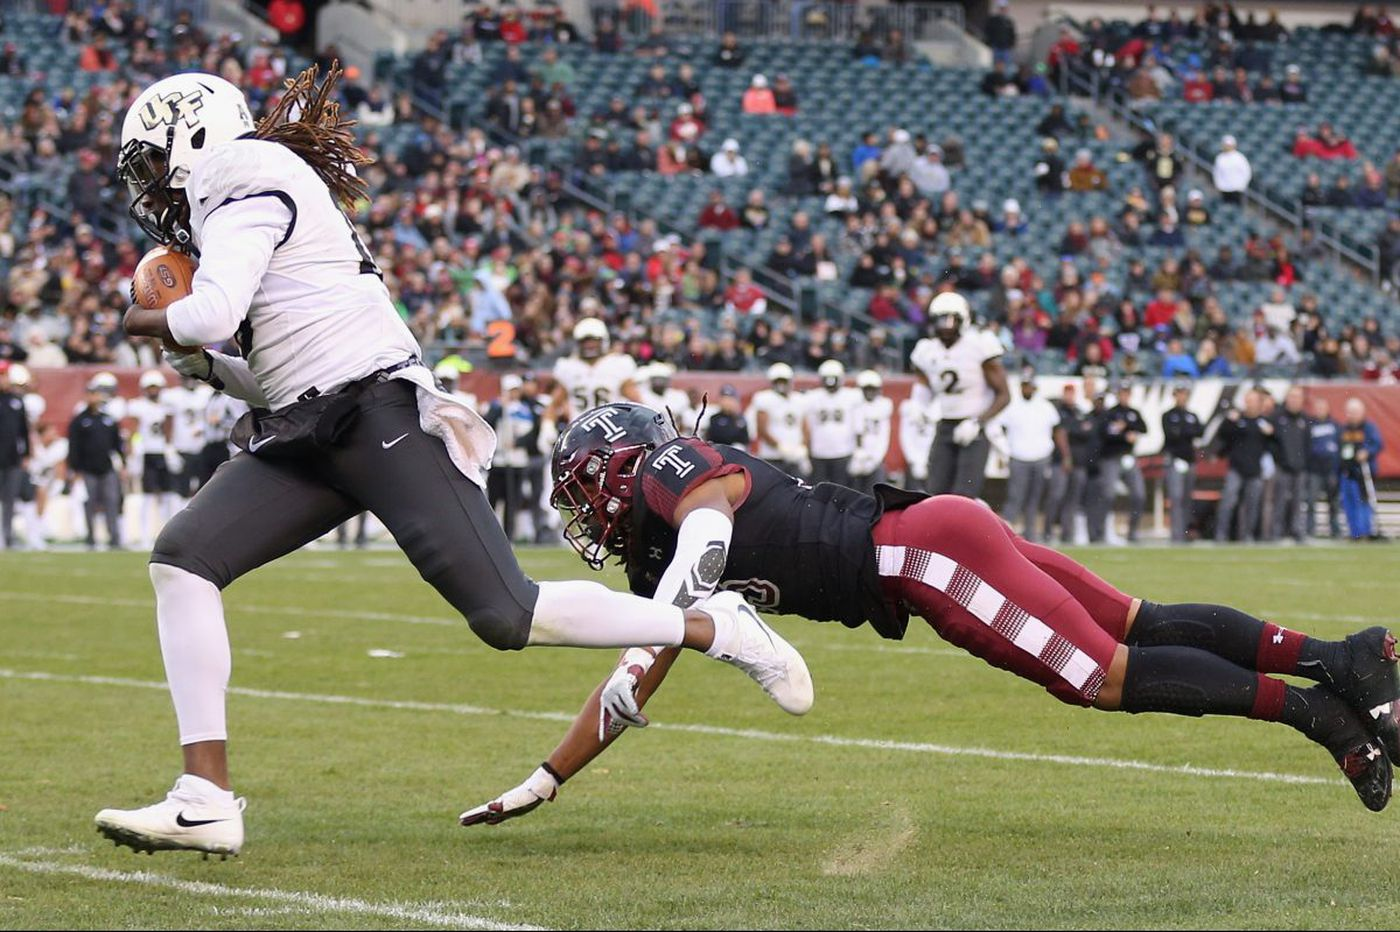 Temple football's loss to Central Florida shows Owls need to speed up